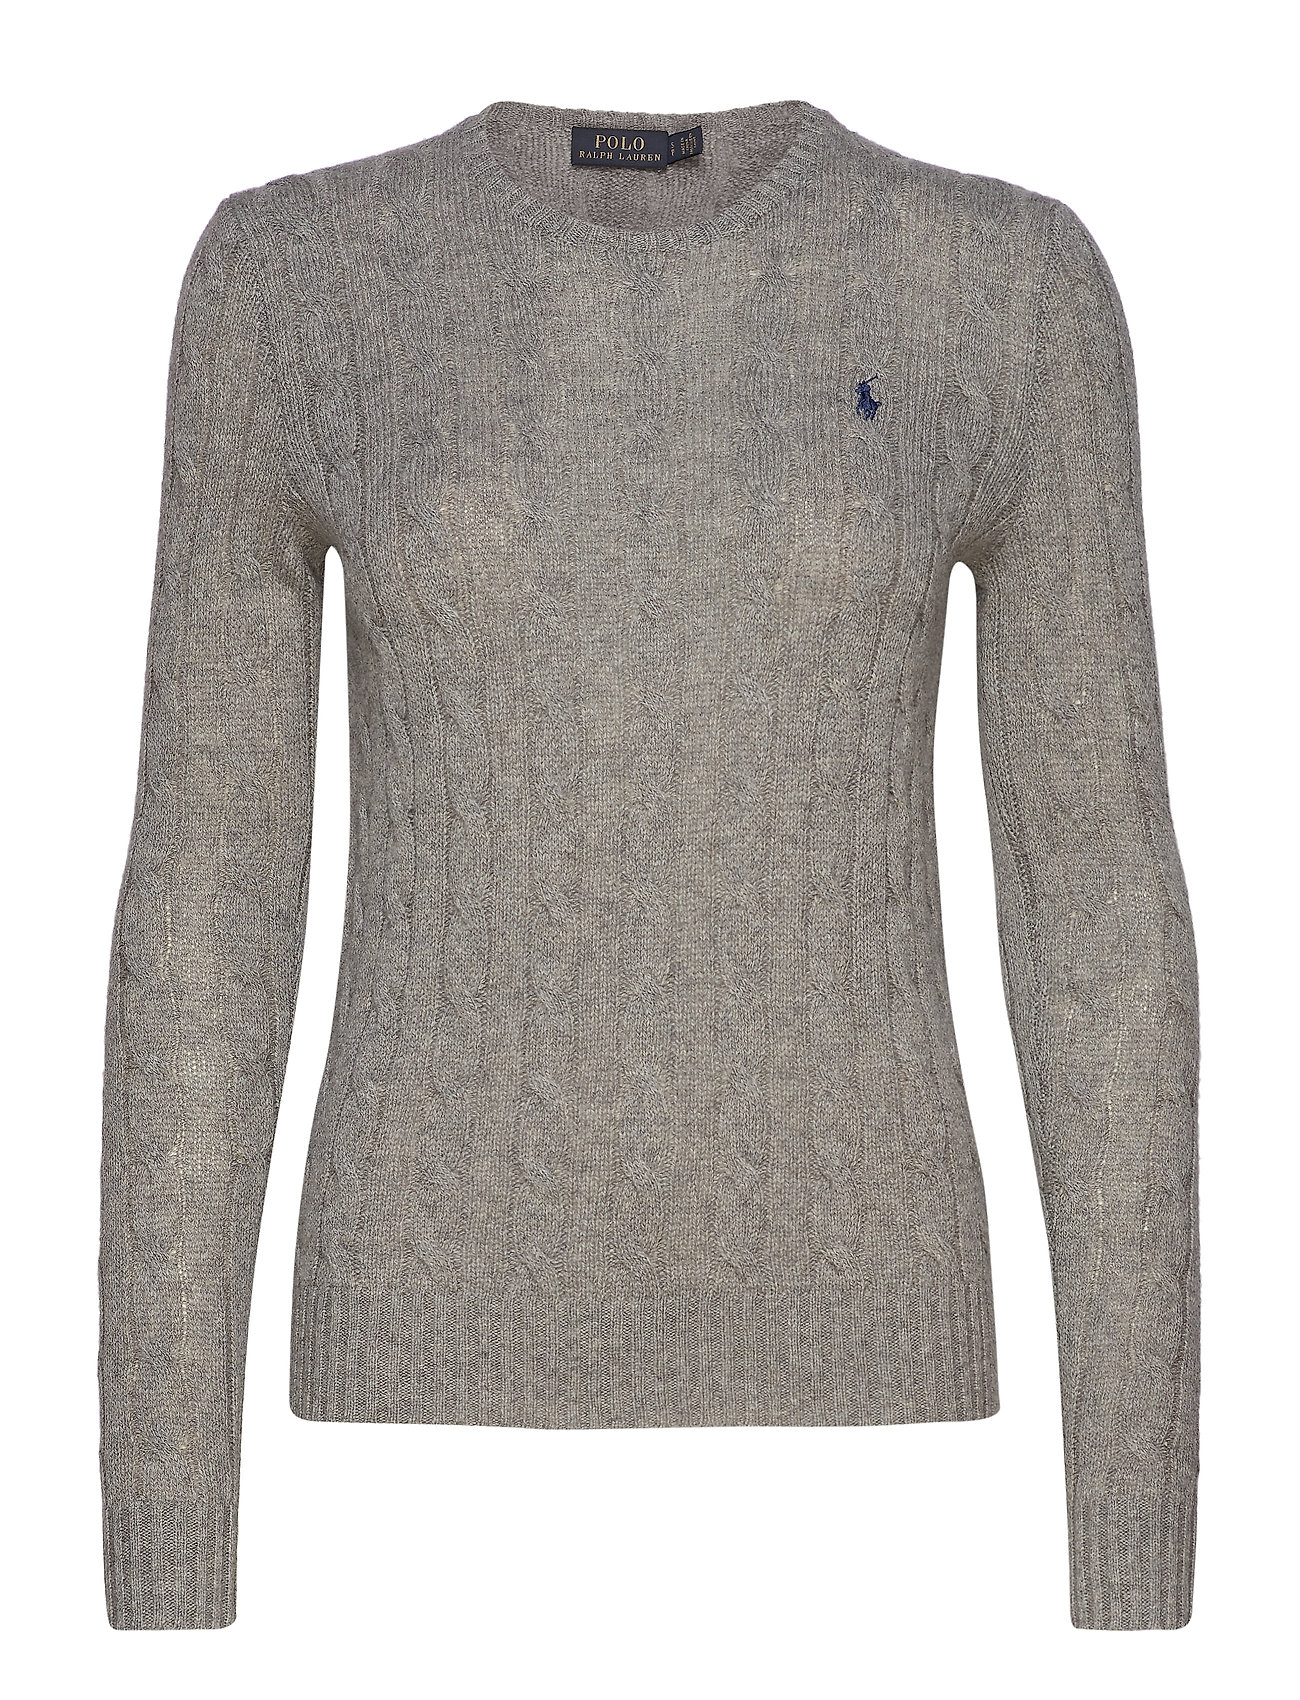 Polo Ralph Lauren Cable Wool-Cashmere Sweater - FAWN GREY HEATHER